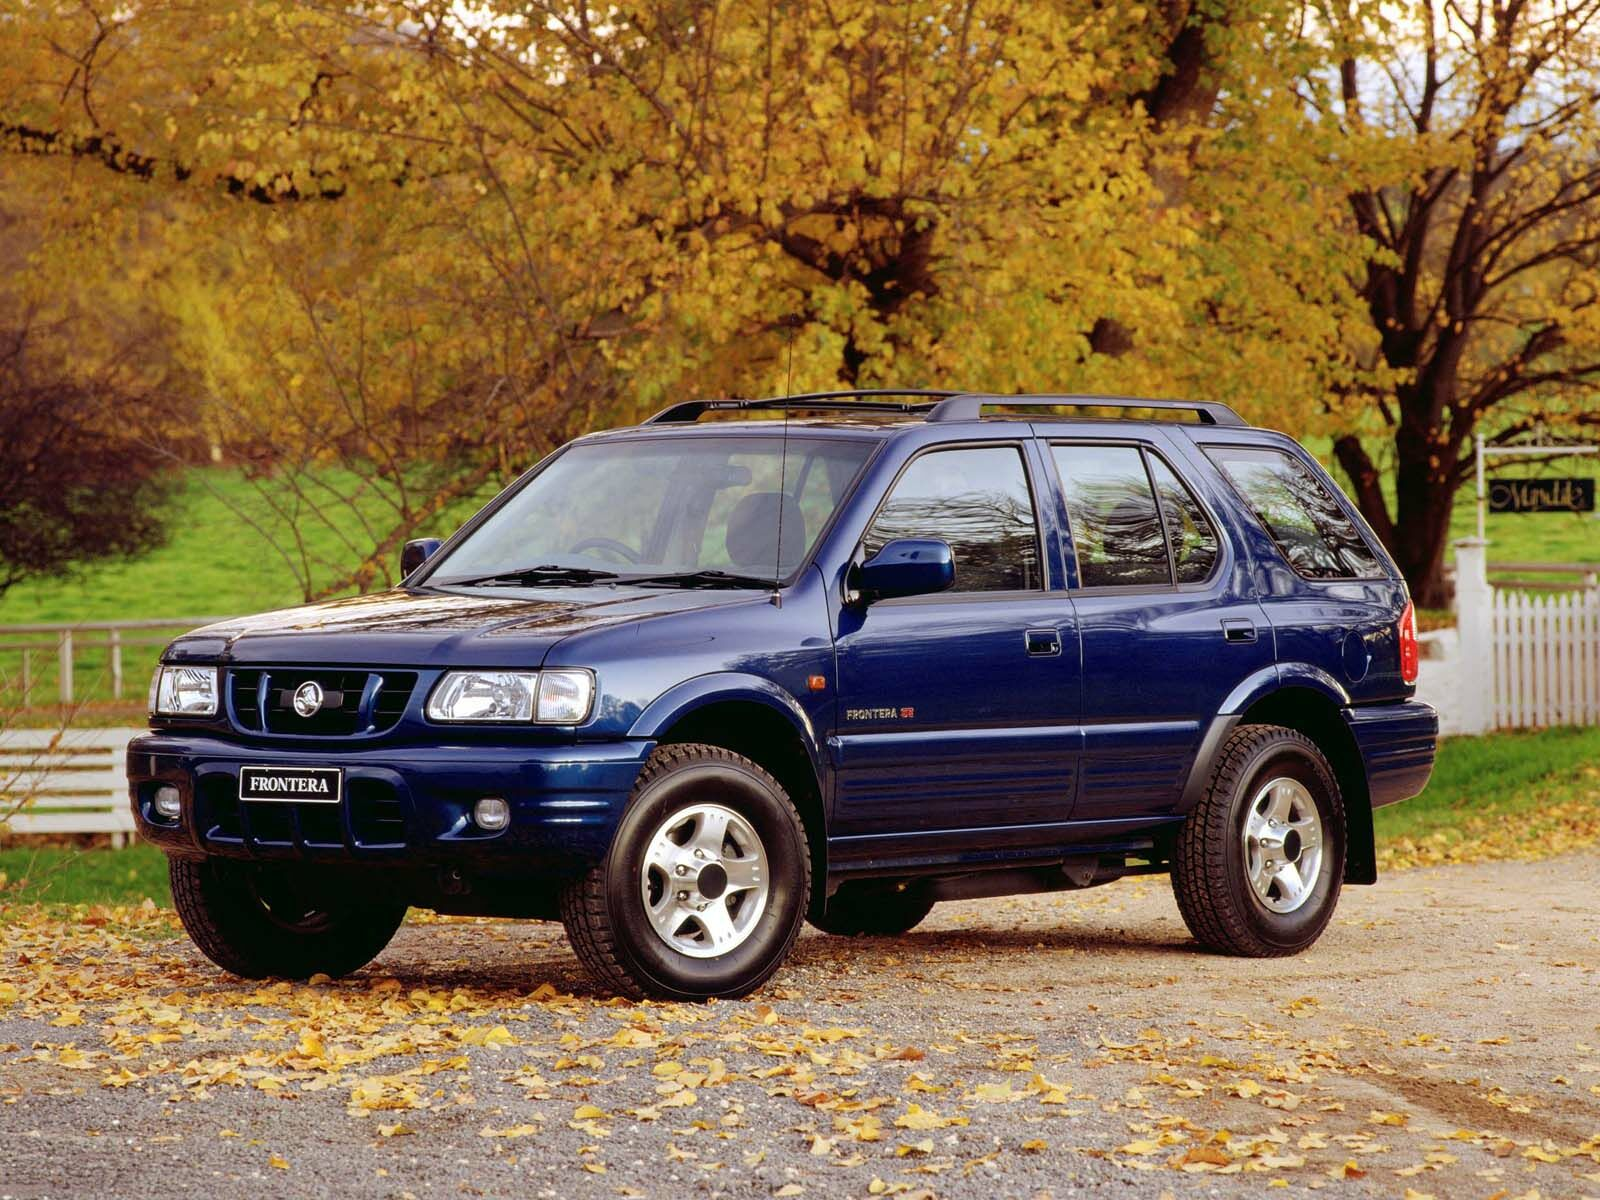 holden frontera pictures #1